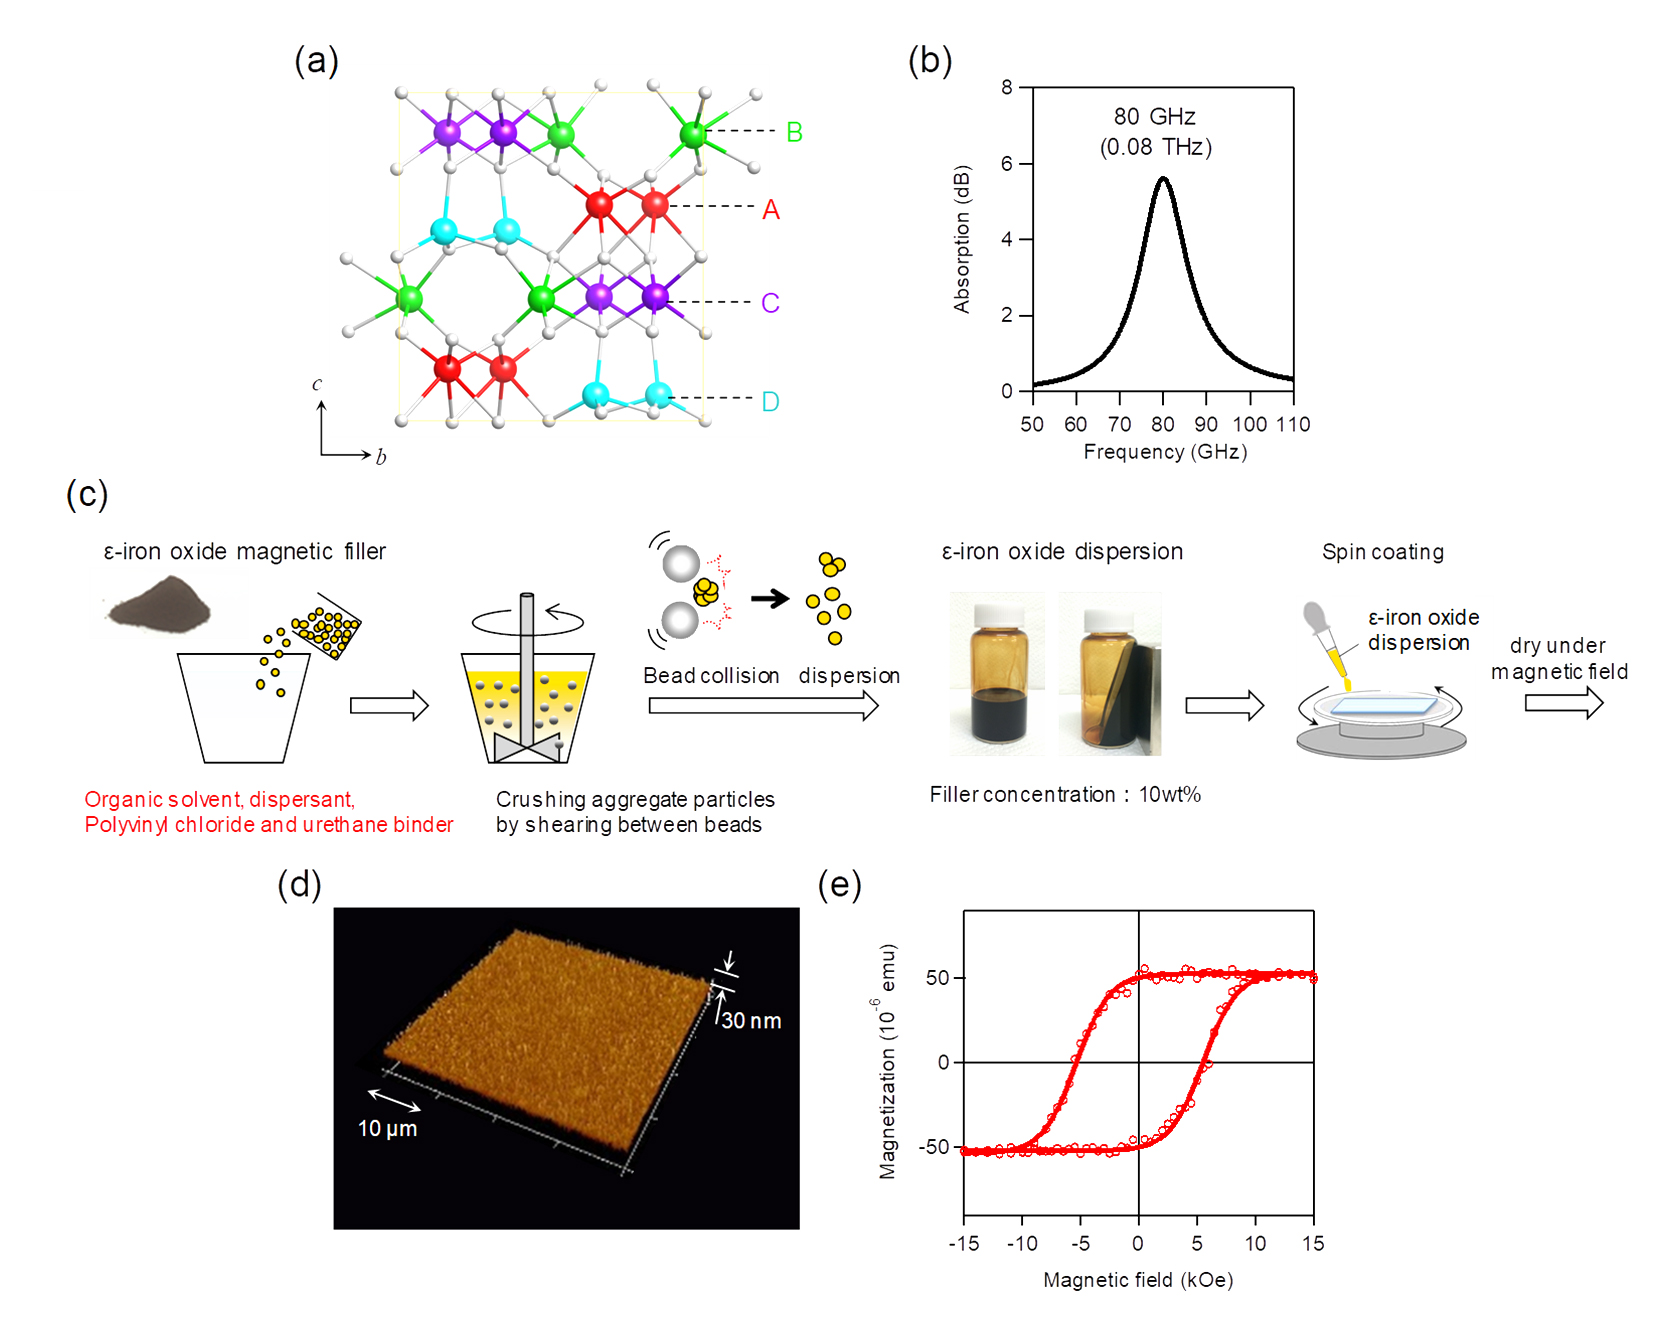 Figure 2. Physical properties of GTC-type ε-iron oxide (ε-Gax(TiCo)yFe2−x−2yO3) and preparation of magnetic film.